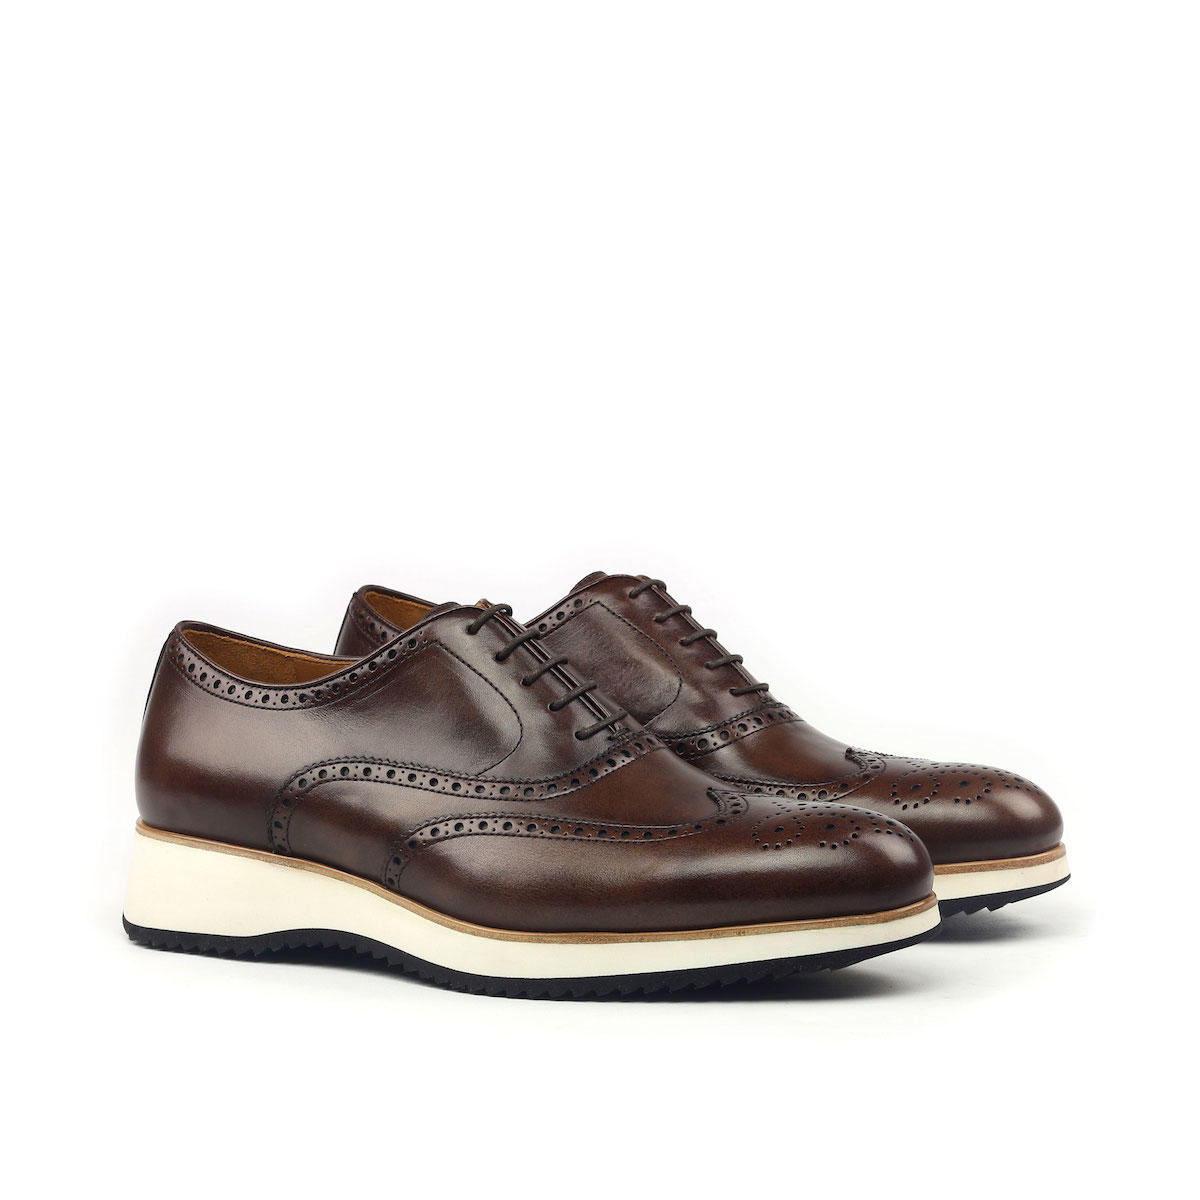 MANOR OF LONDON 'The Marylebone' Dark Brown Calfskin Brogue Luxury Custom Initials Monogrammed Front Side View